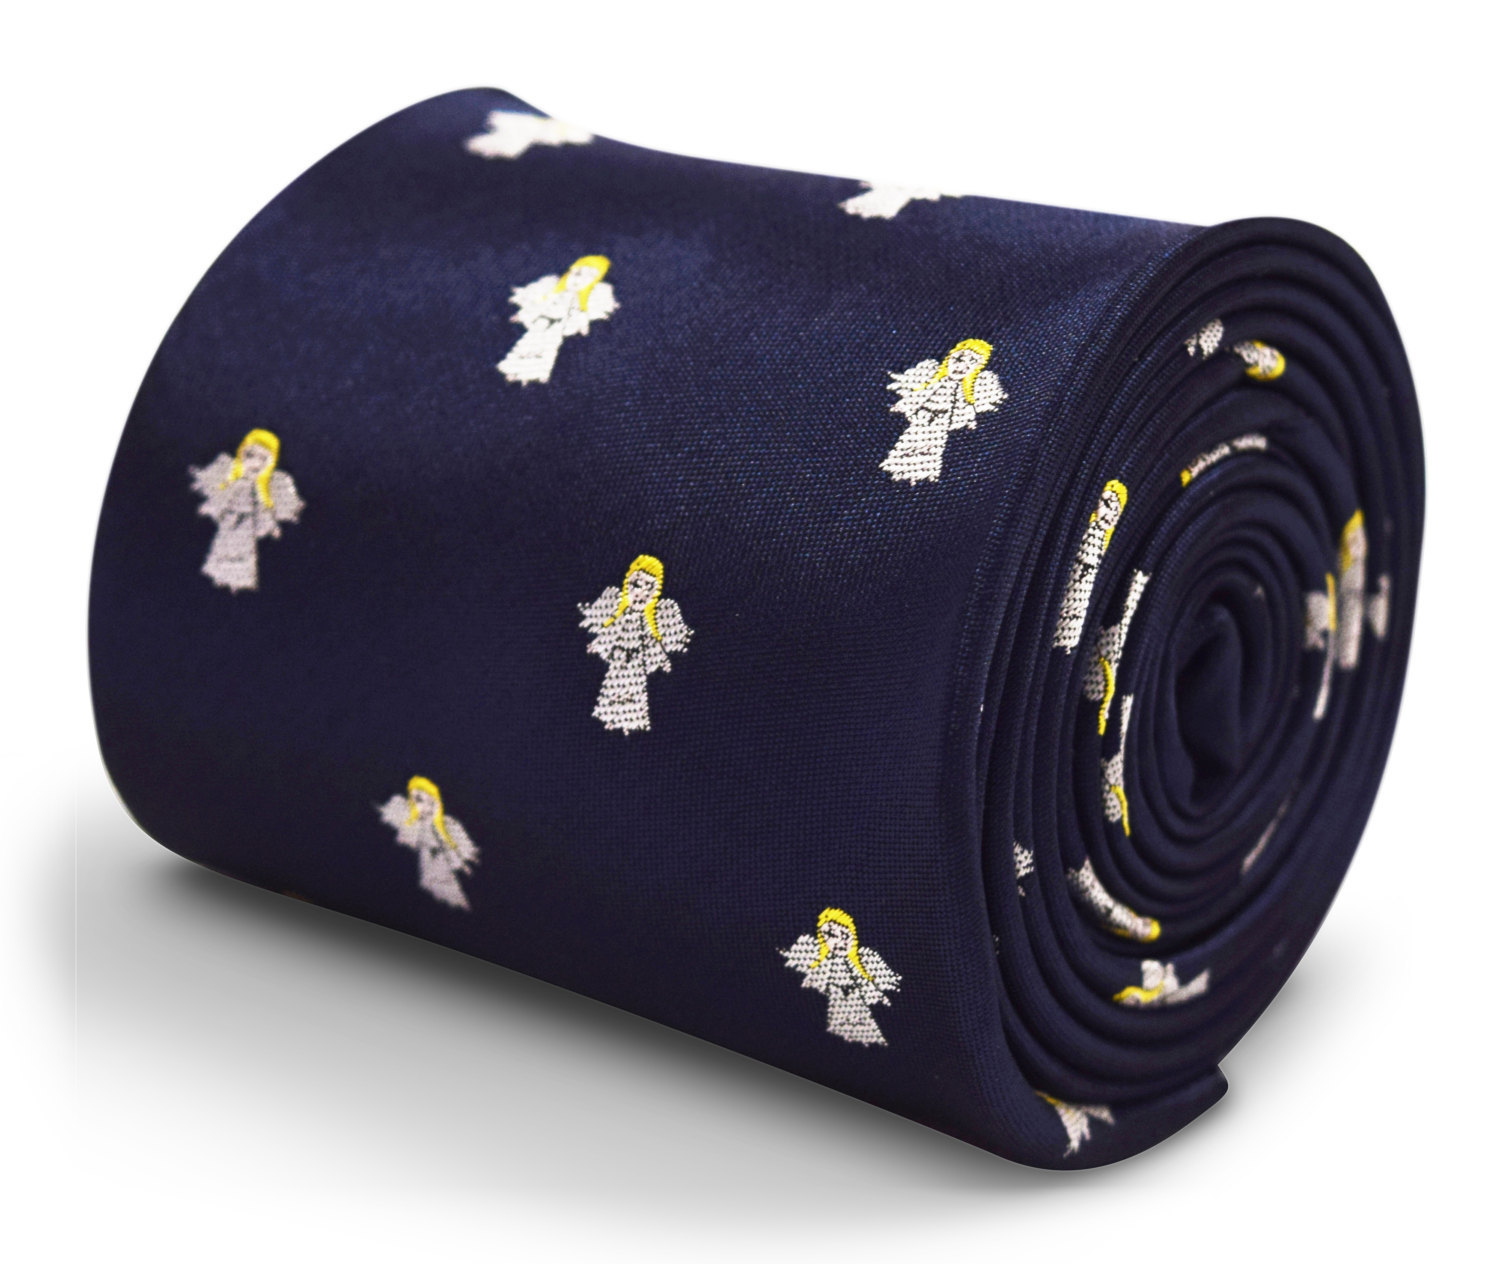 navy blue tie with angel embroidered design with signature floral design to the